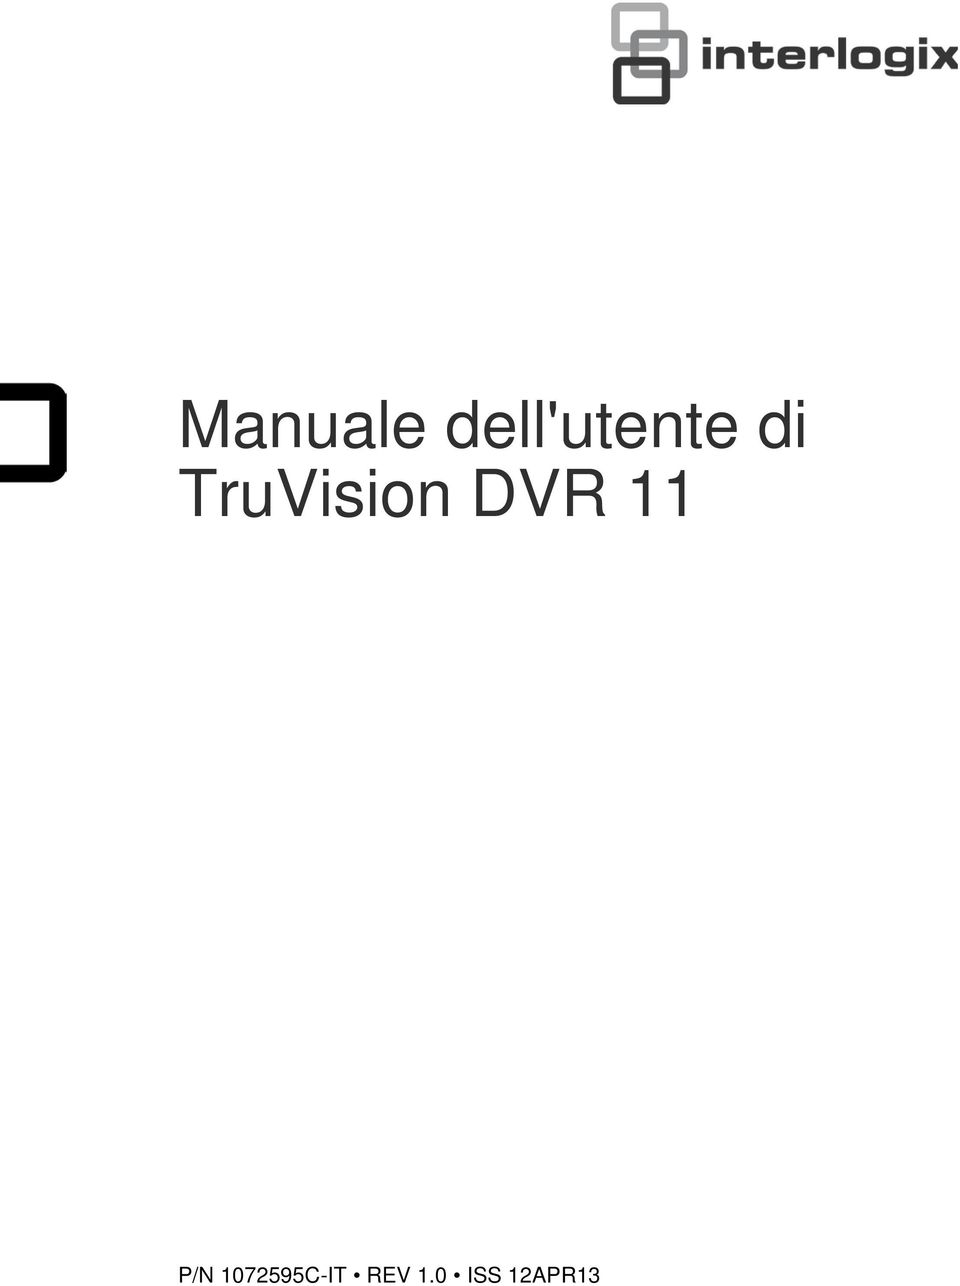 TruVision DVR 11